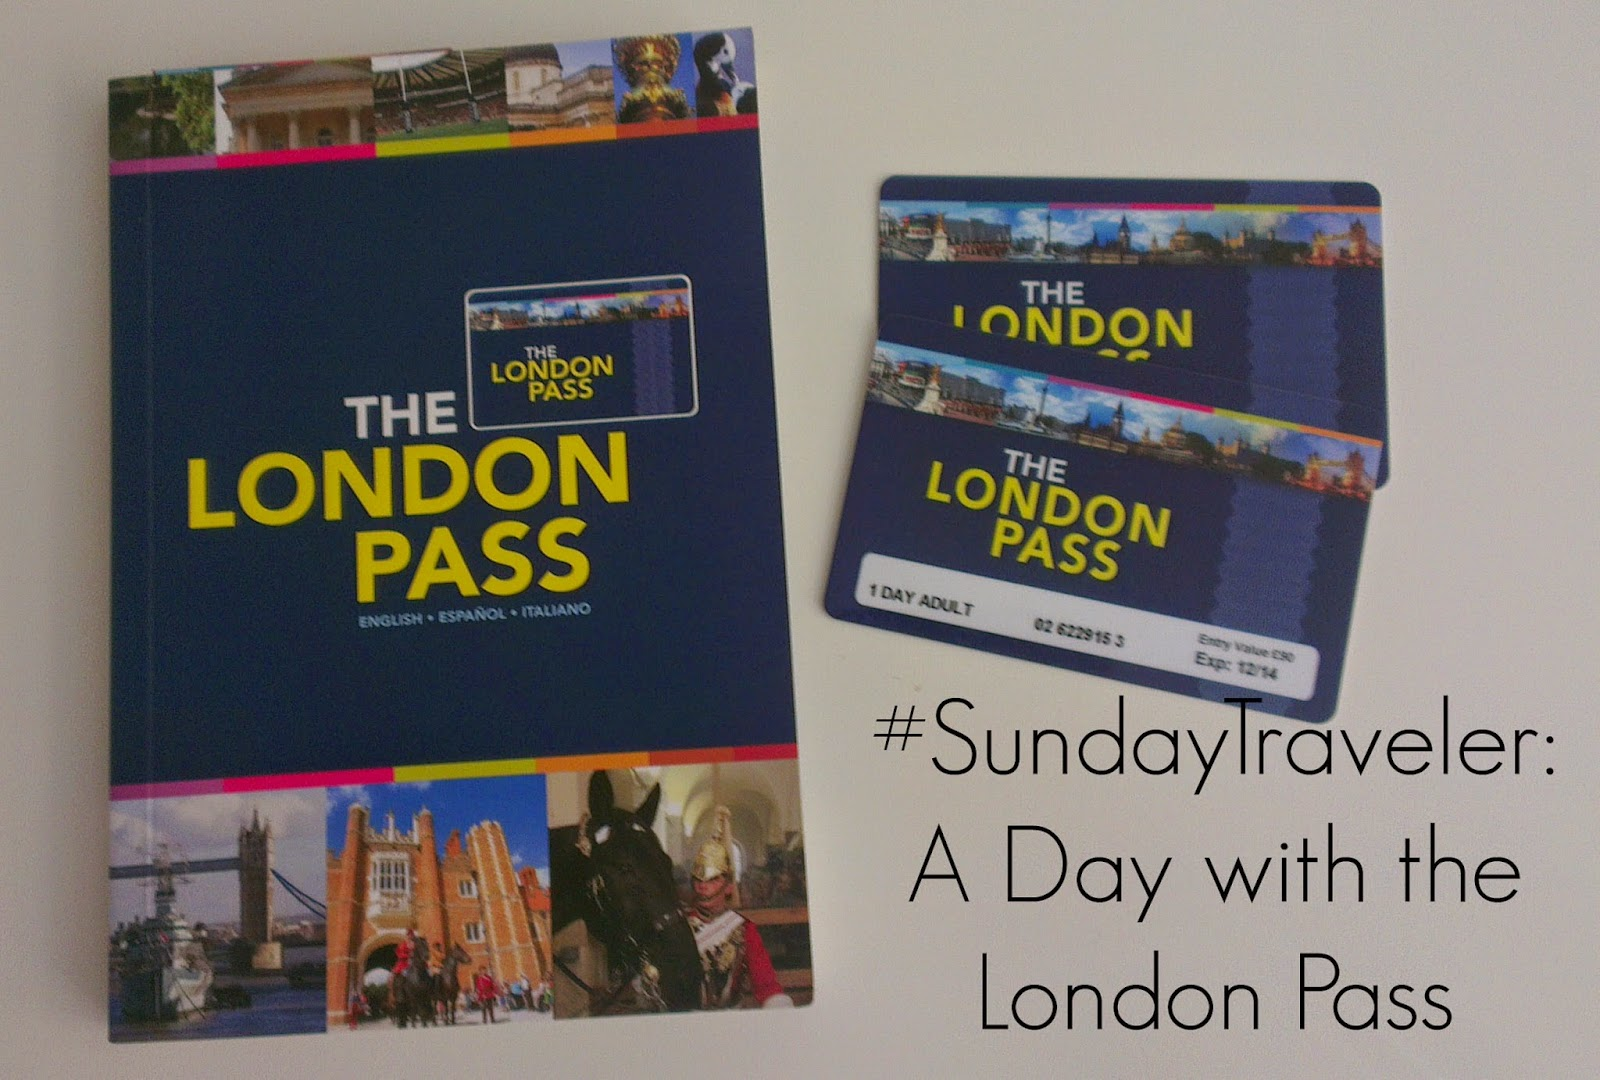 Ace the Adventure: #SundayTraveler: A Day with the London Pass